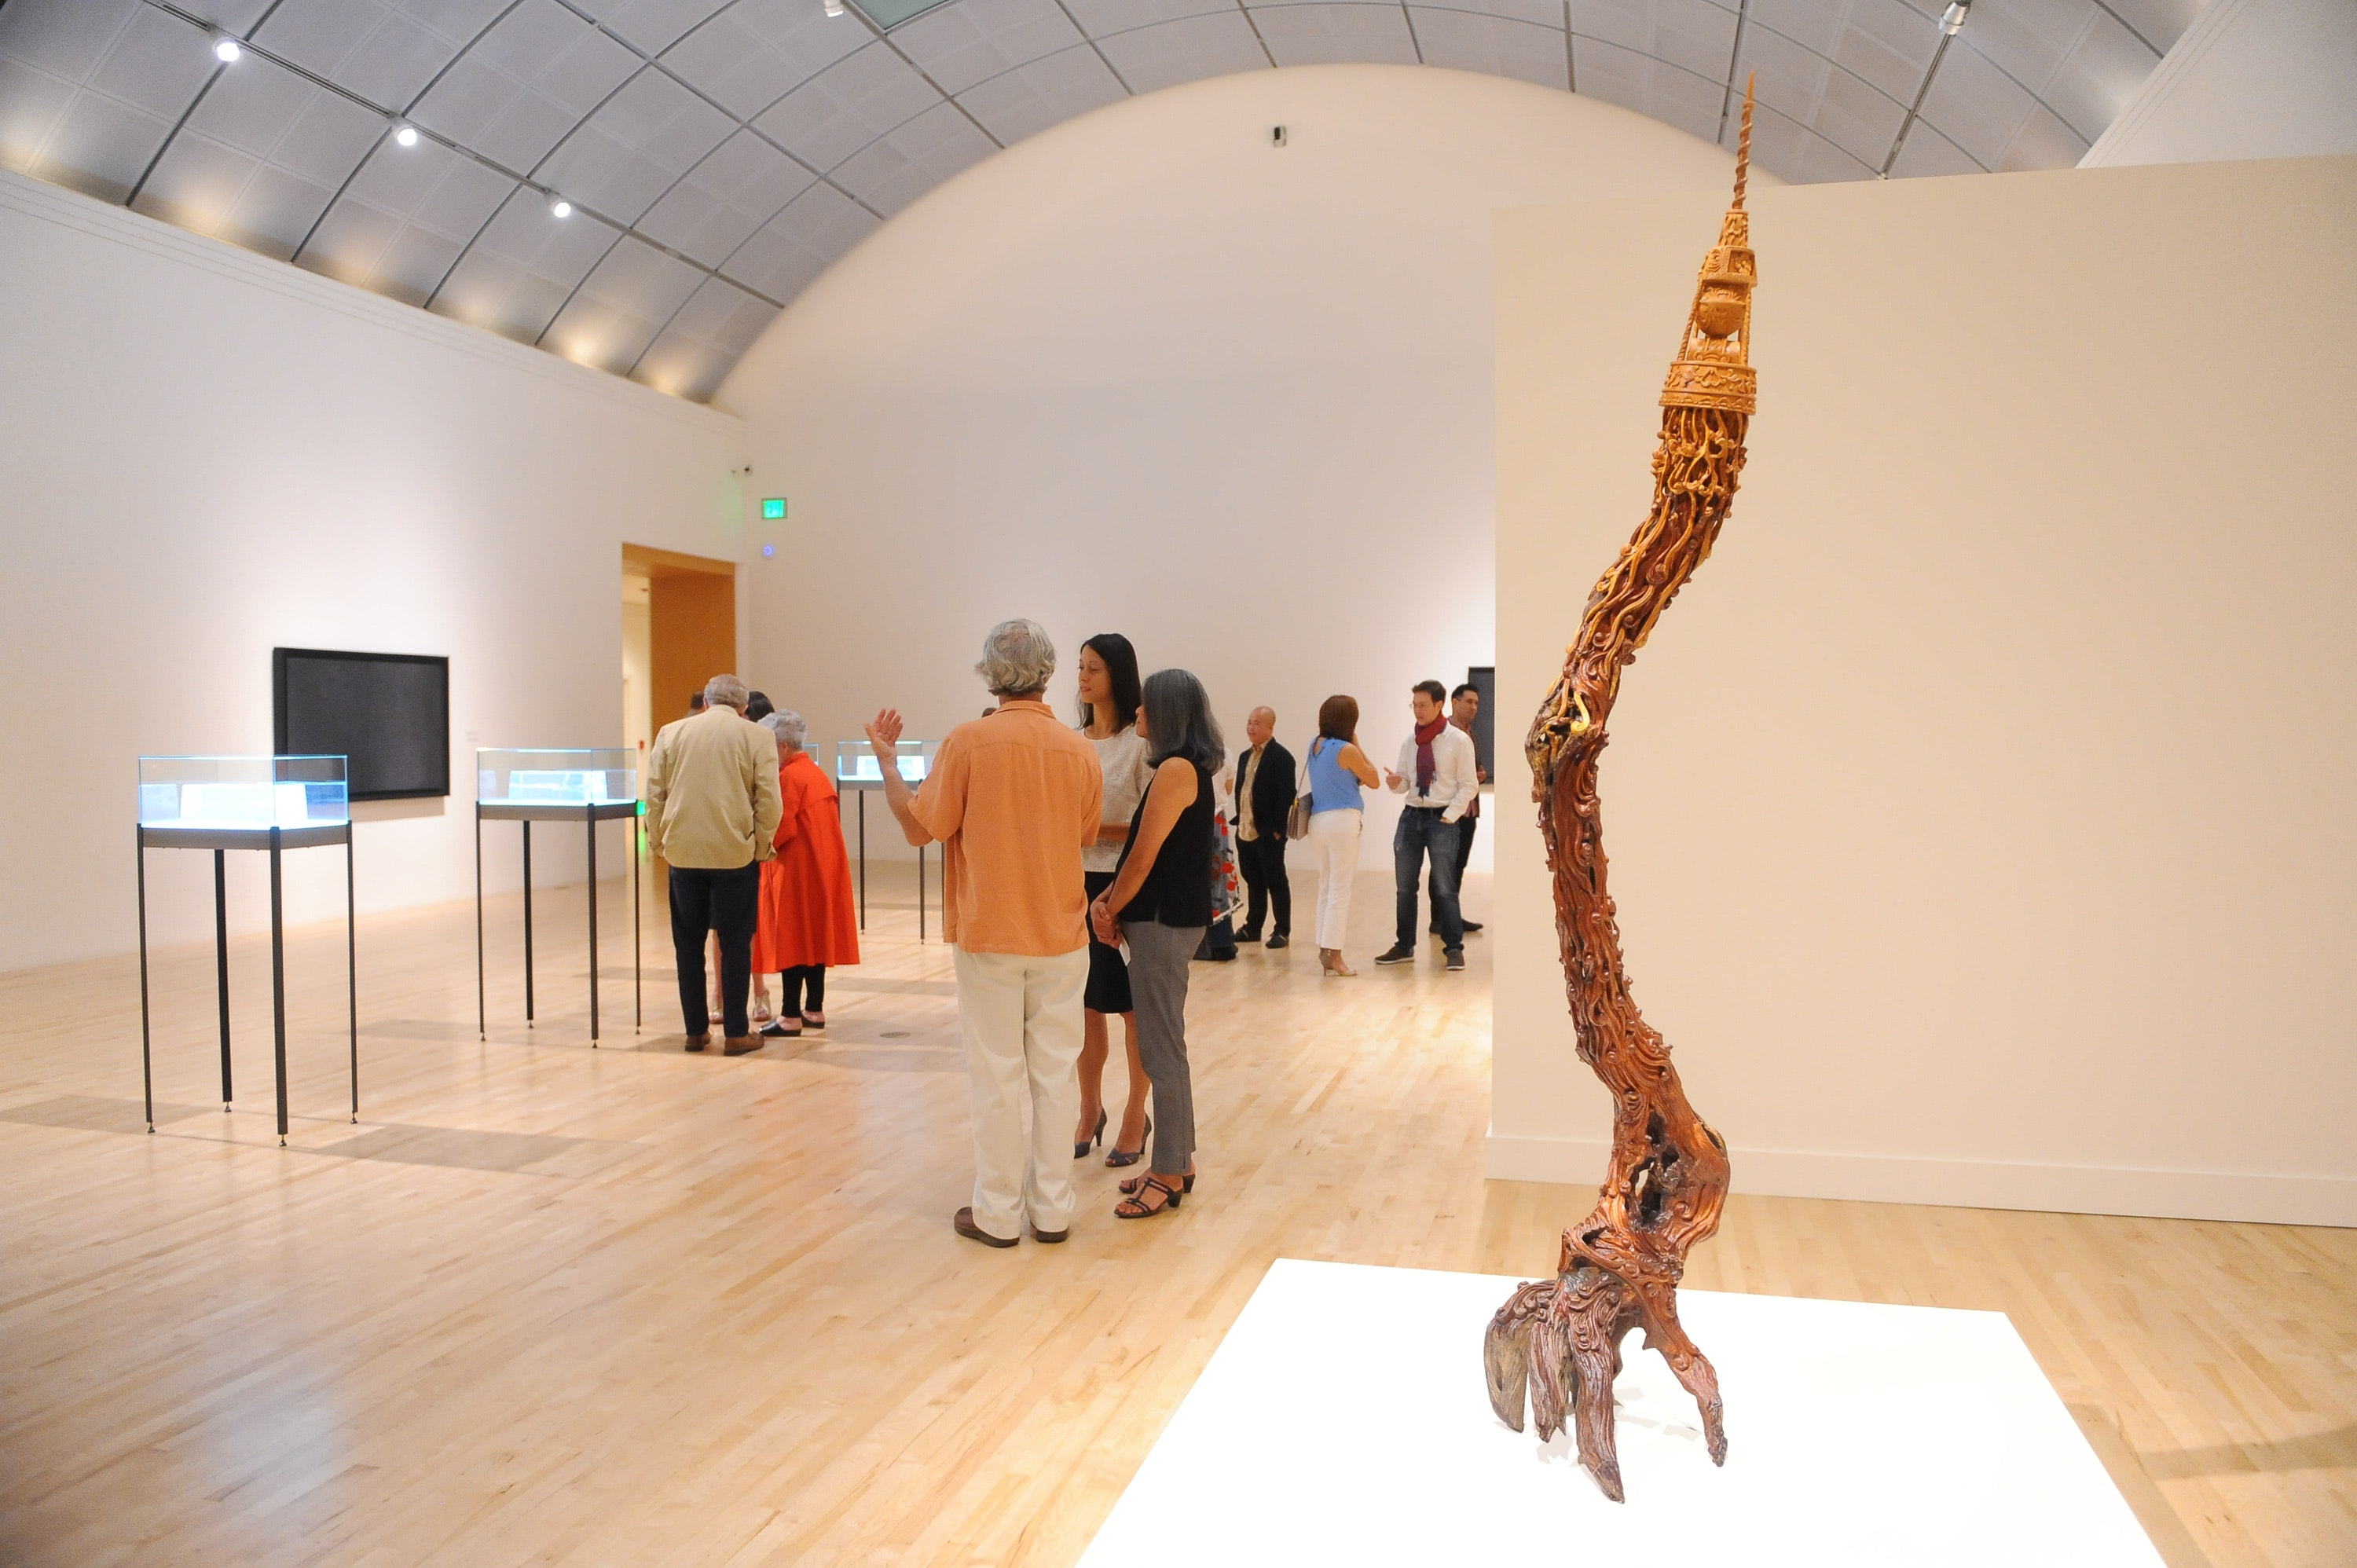 <p>San Jose Museum of Art will use new Knight funding to present the first major survey of renowned Vietnamese art collective, The Propeller Group. Photo courtesy of San Jose Museum of Art.</p>